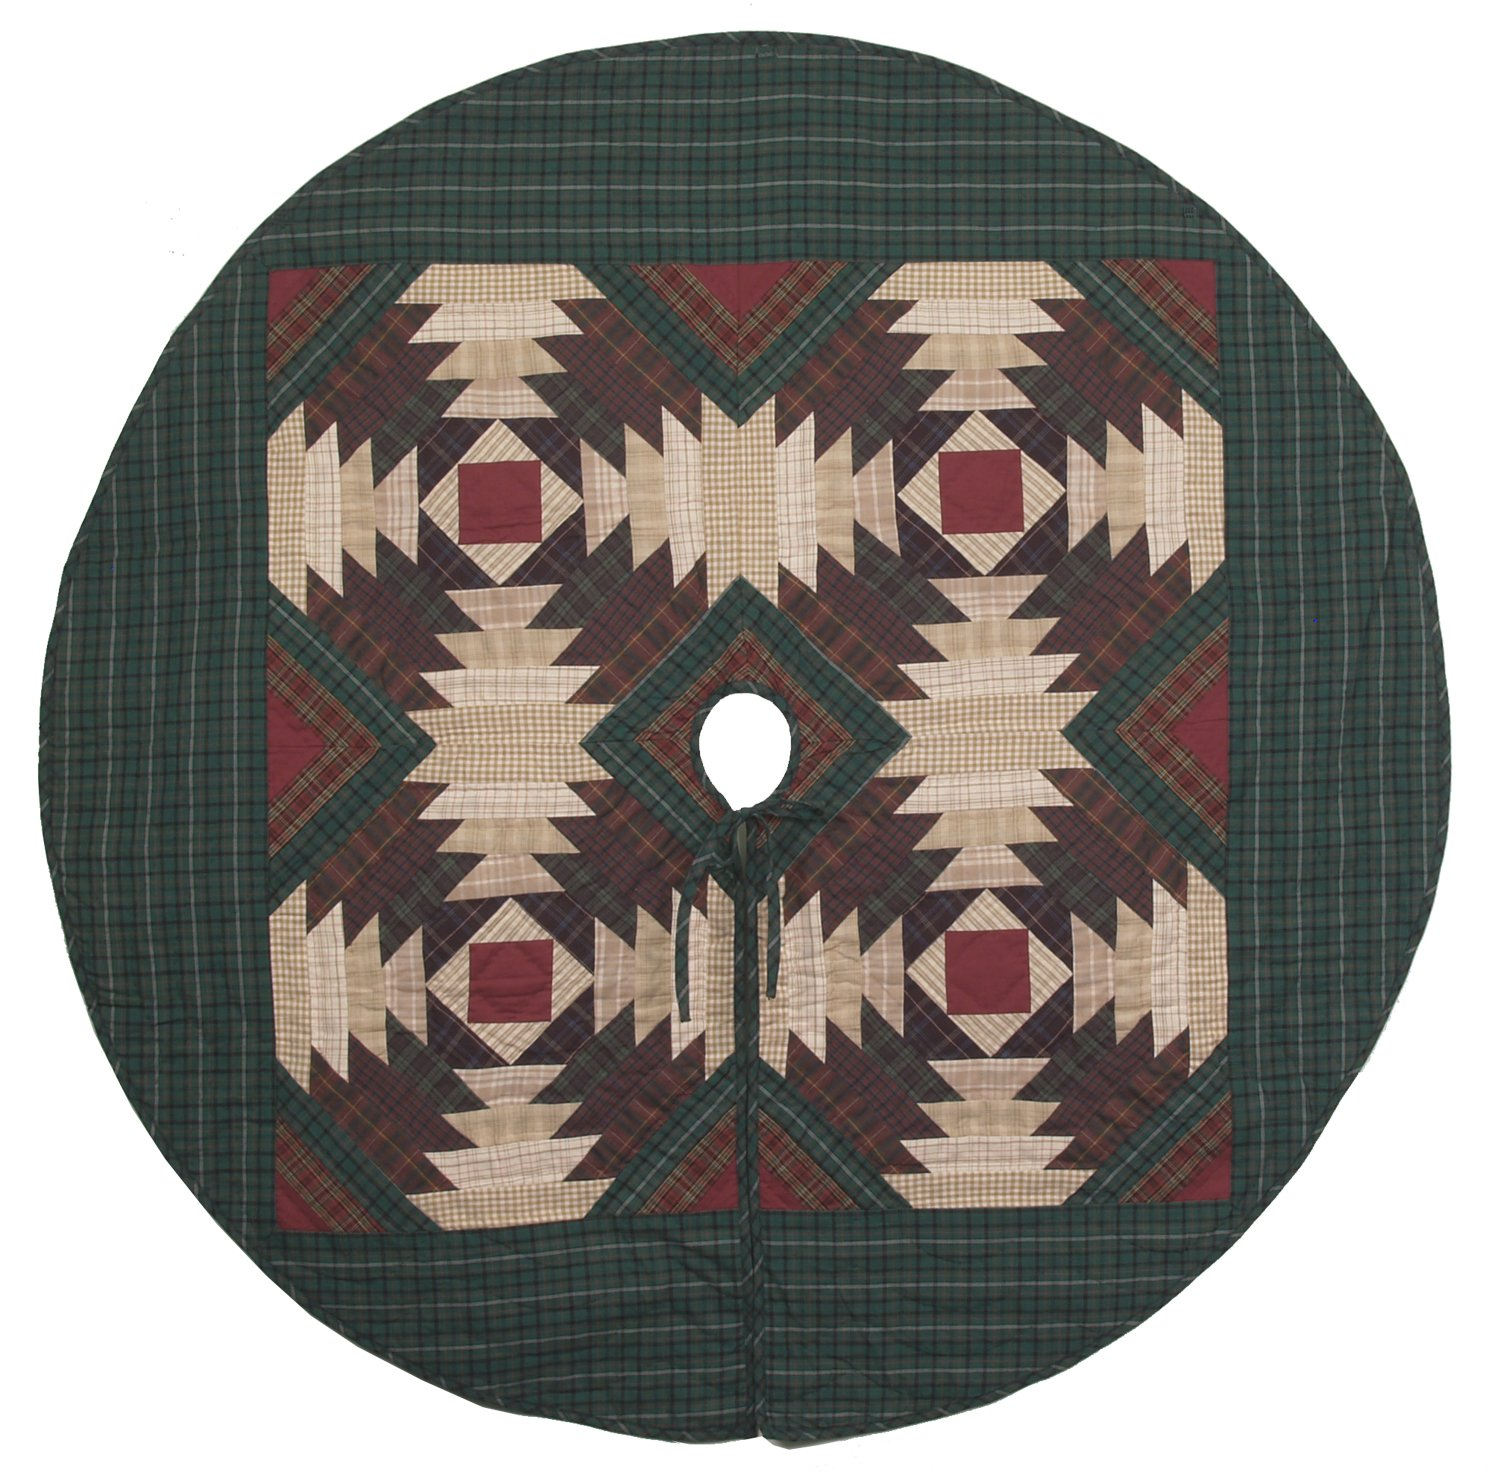 Pineapple Log Cabin Quilted Christmas Tree Skirt 60 Inches Round 100% Cotton Handmade Hand Quilted Heirloom Quality